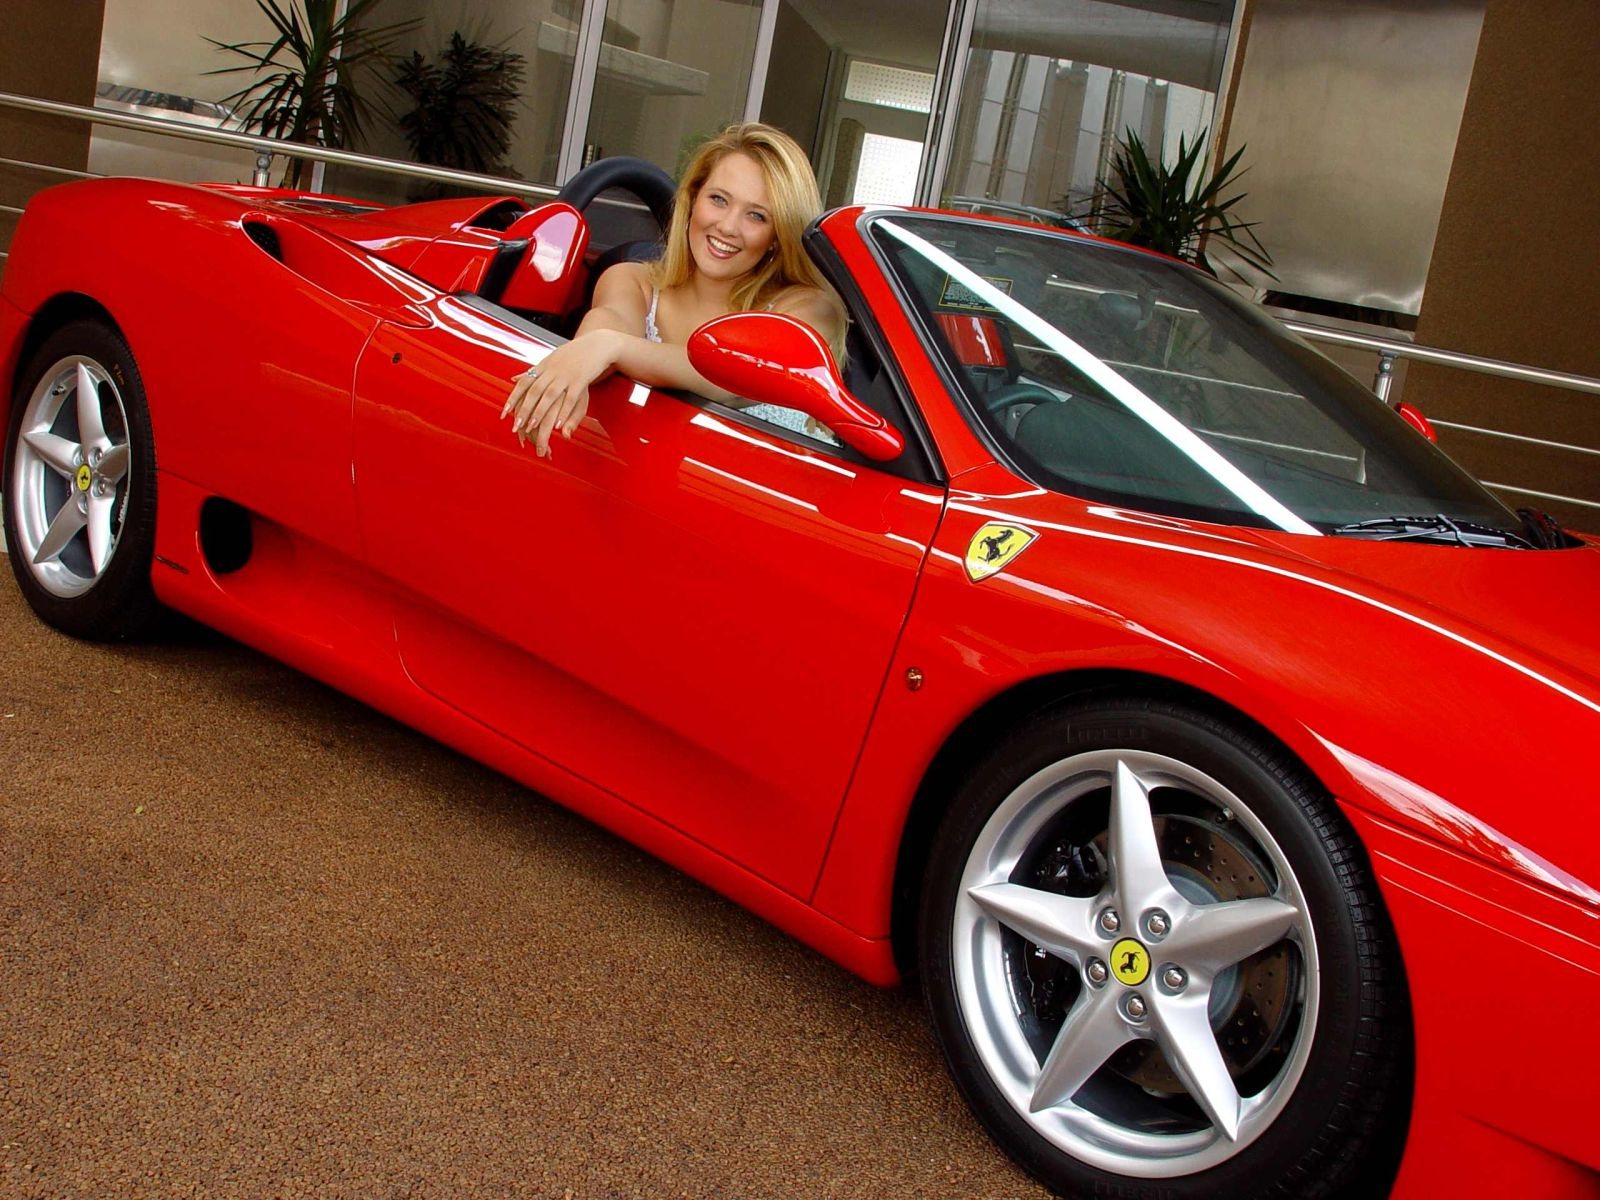 Red Porche with Miss Earth